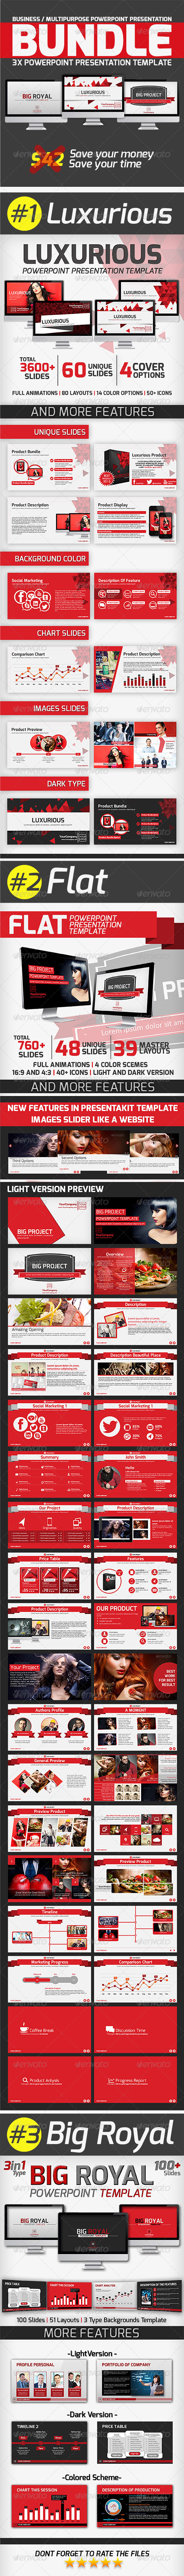 GraphicRiver Powerpoint Presentation Bundle 7546773